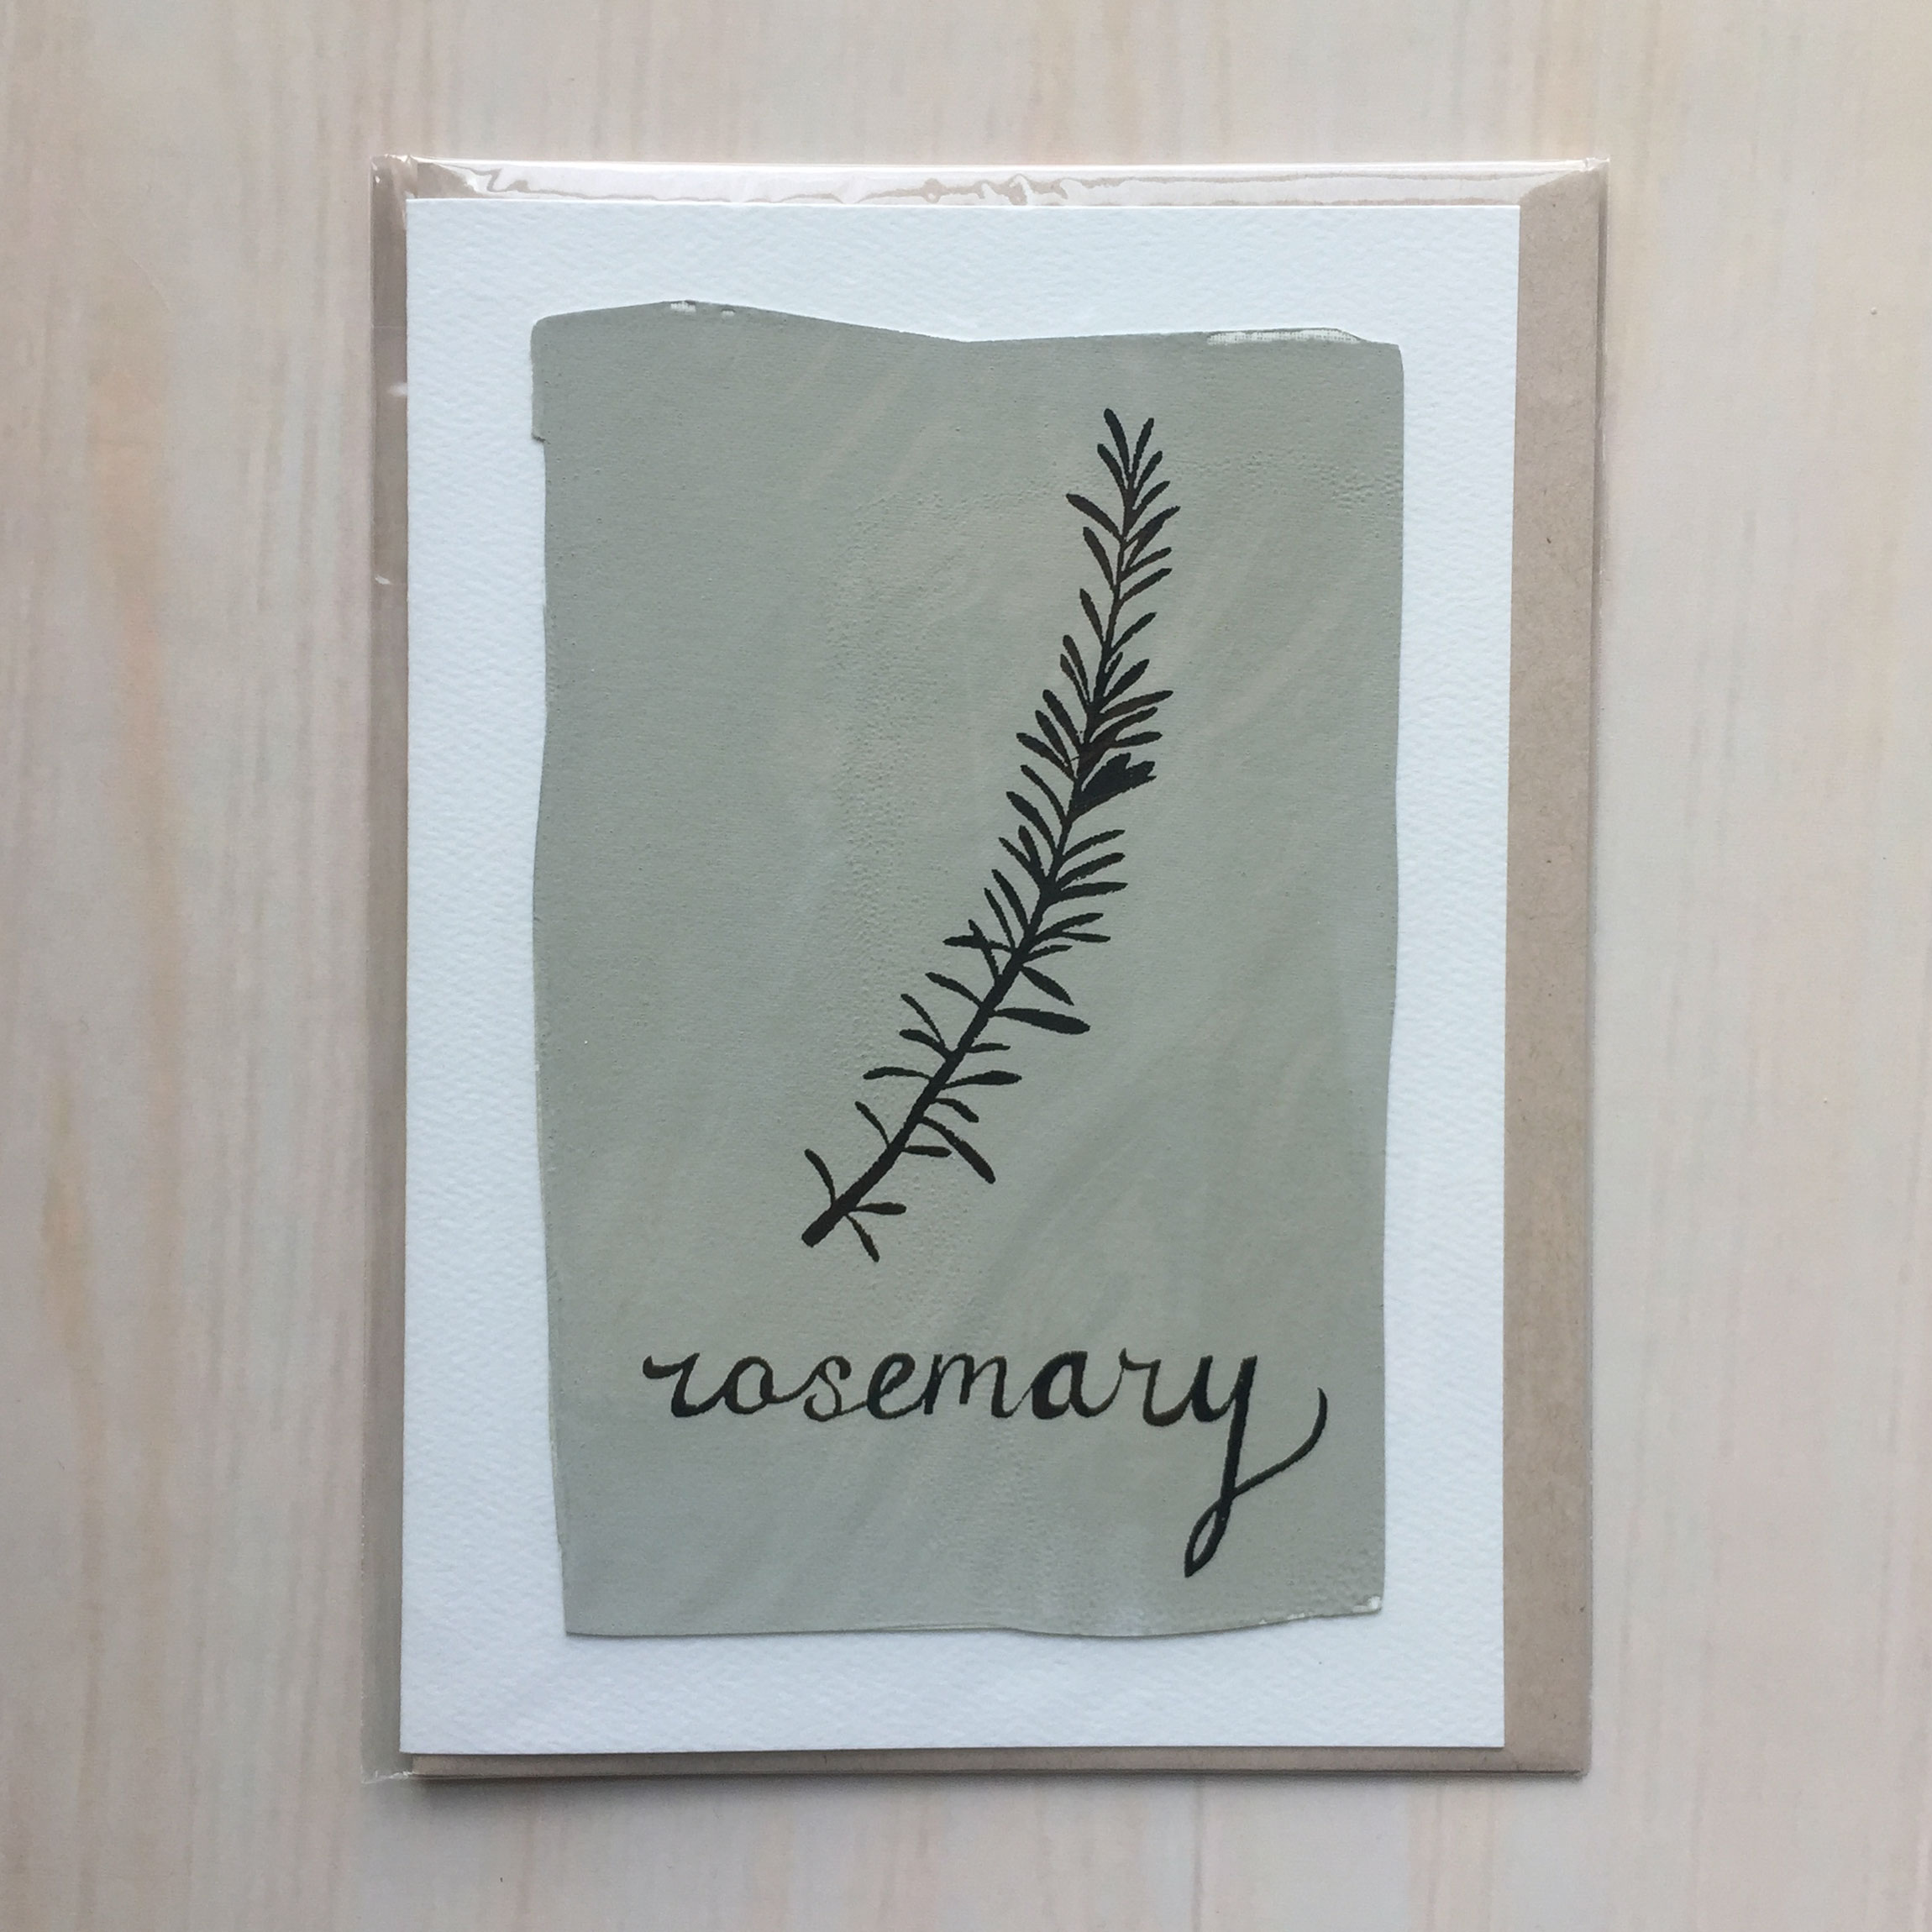 "Rosemary   Size: 5""x7"" Printing: screenprint Inside: blank Envelope: rustic brown"